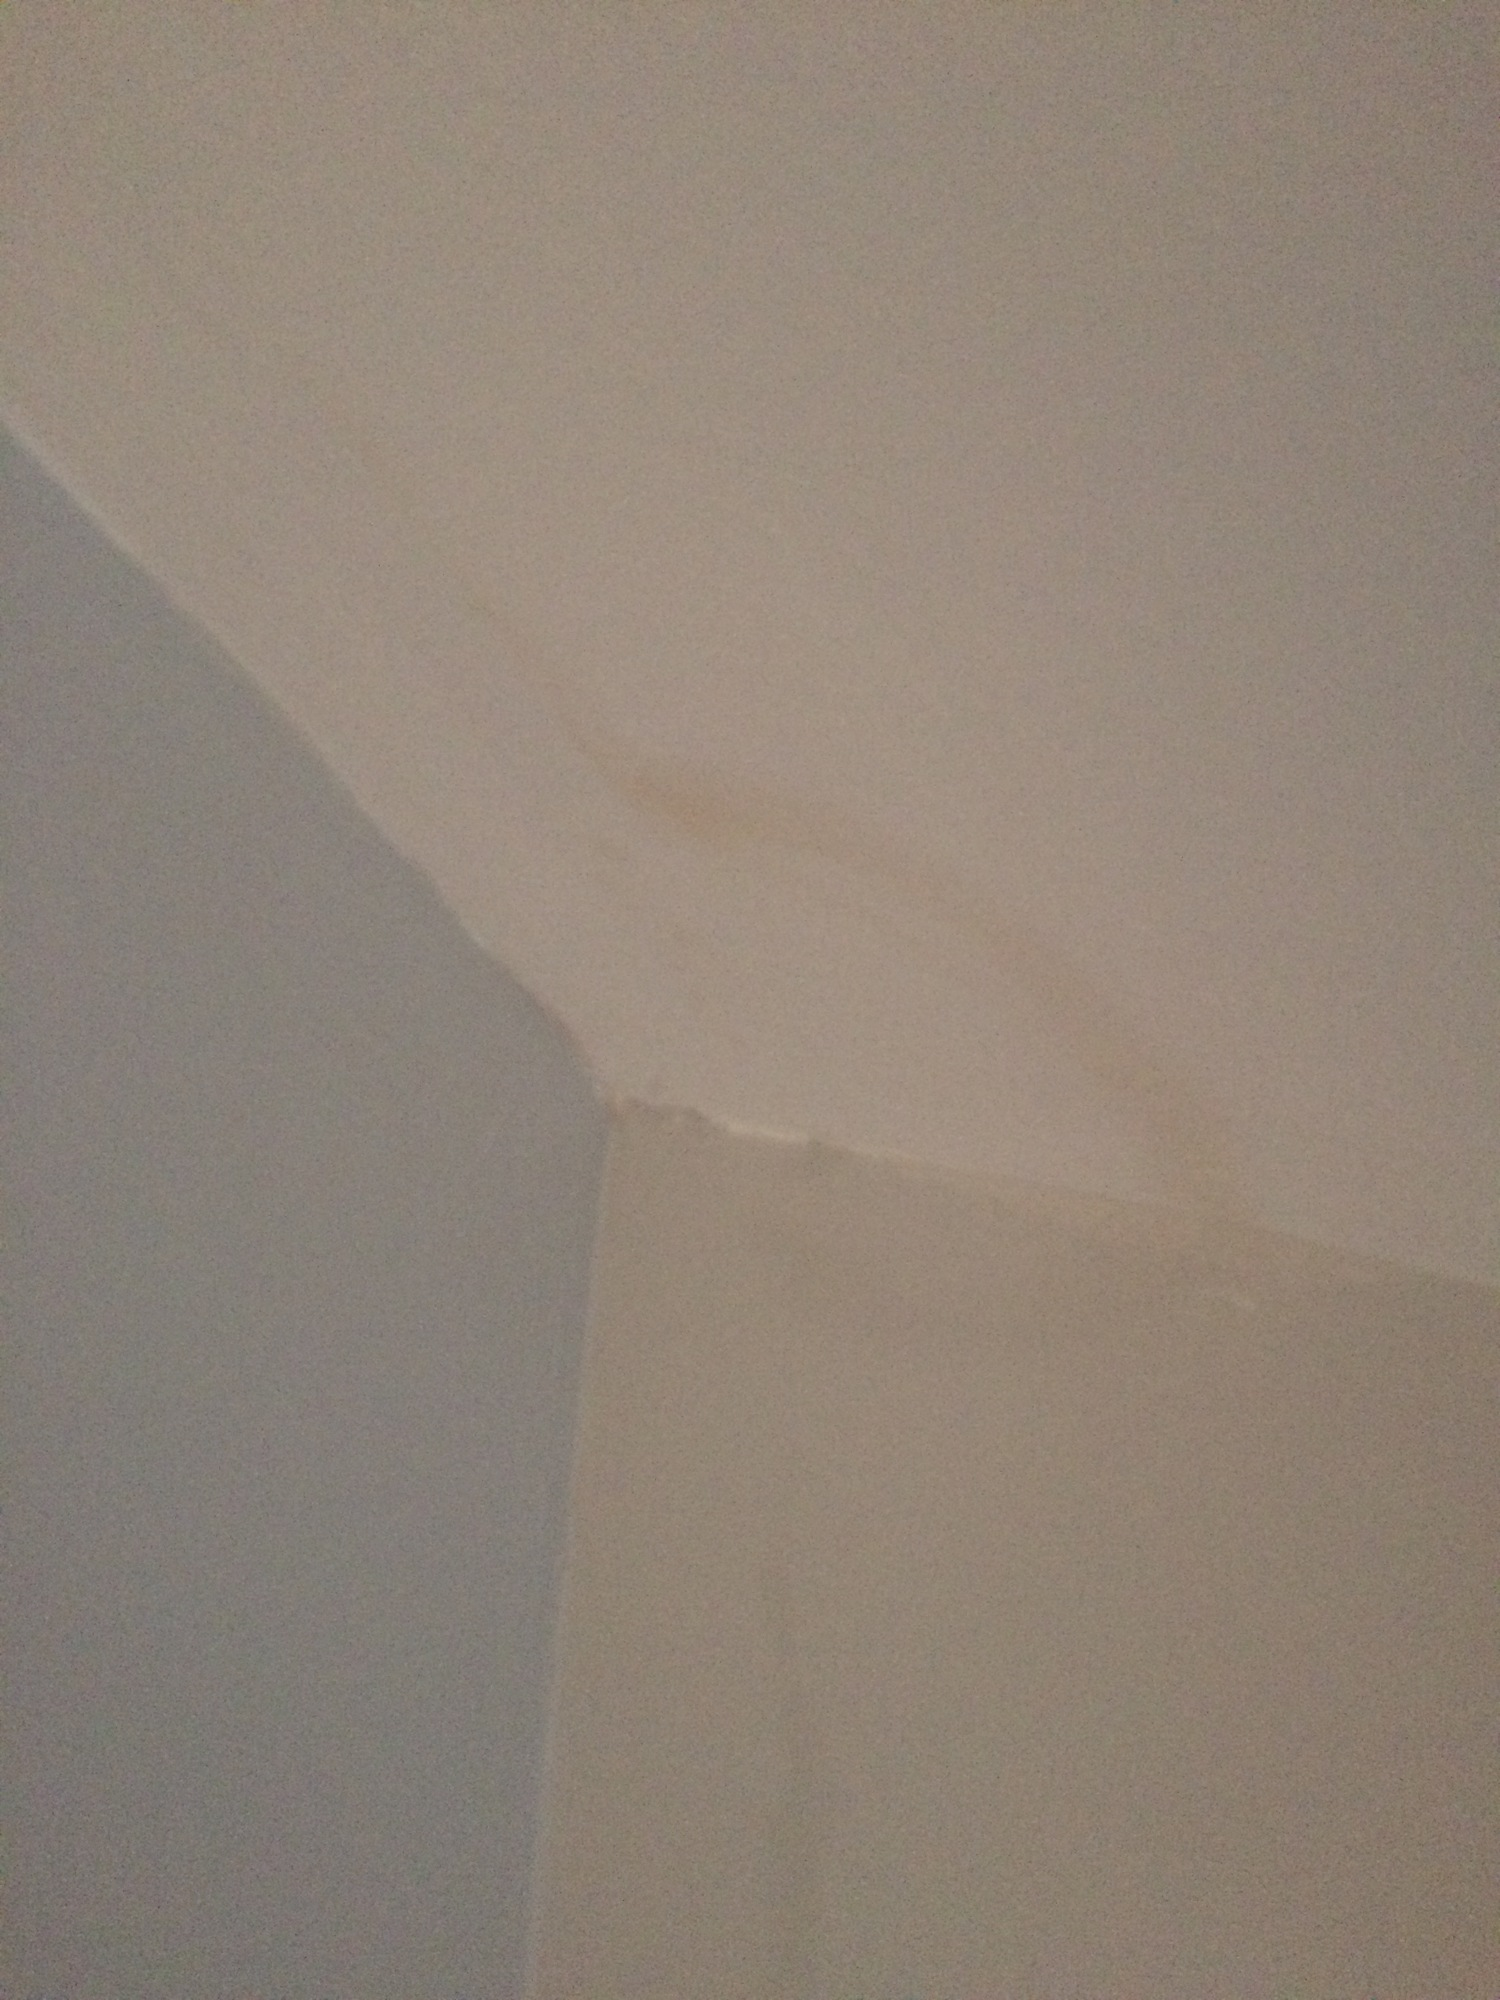 Terrible cutting-in and no stain-blocker on ceiling